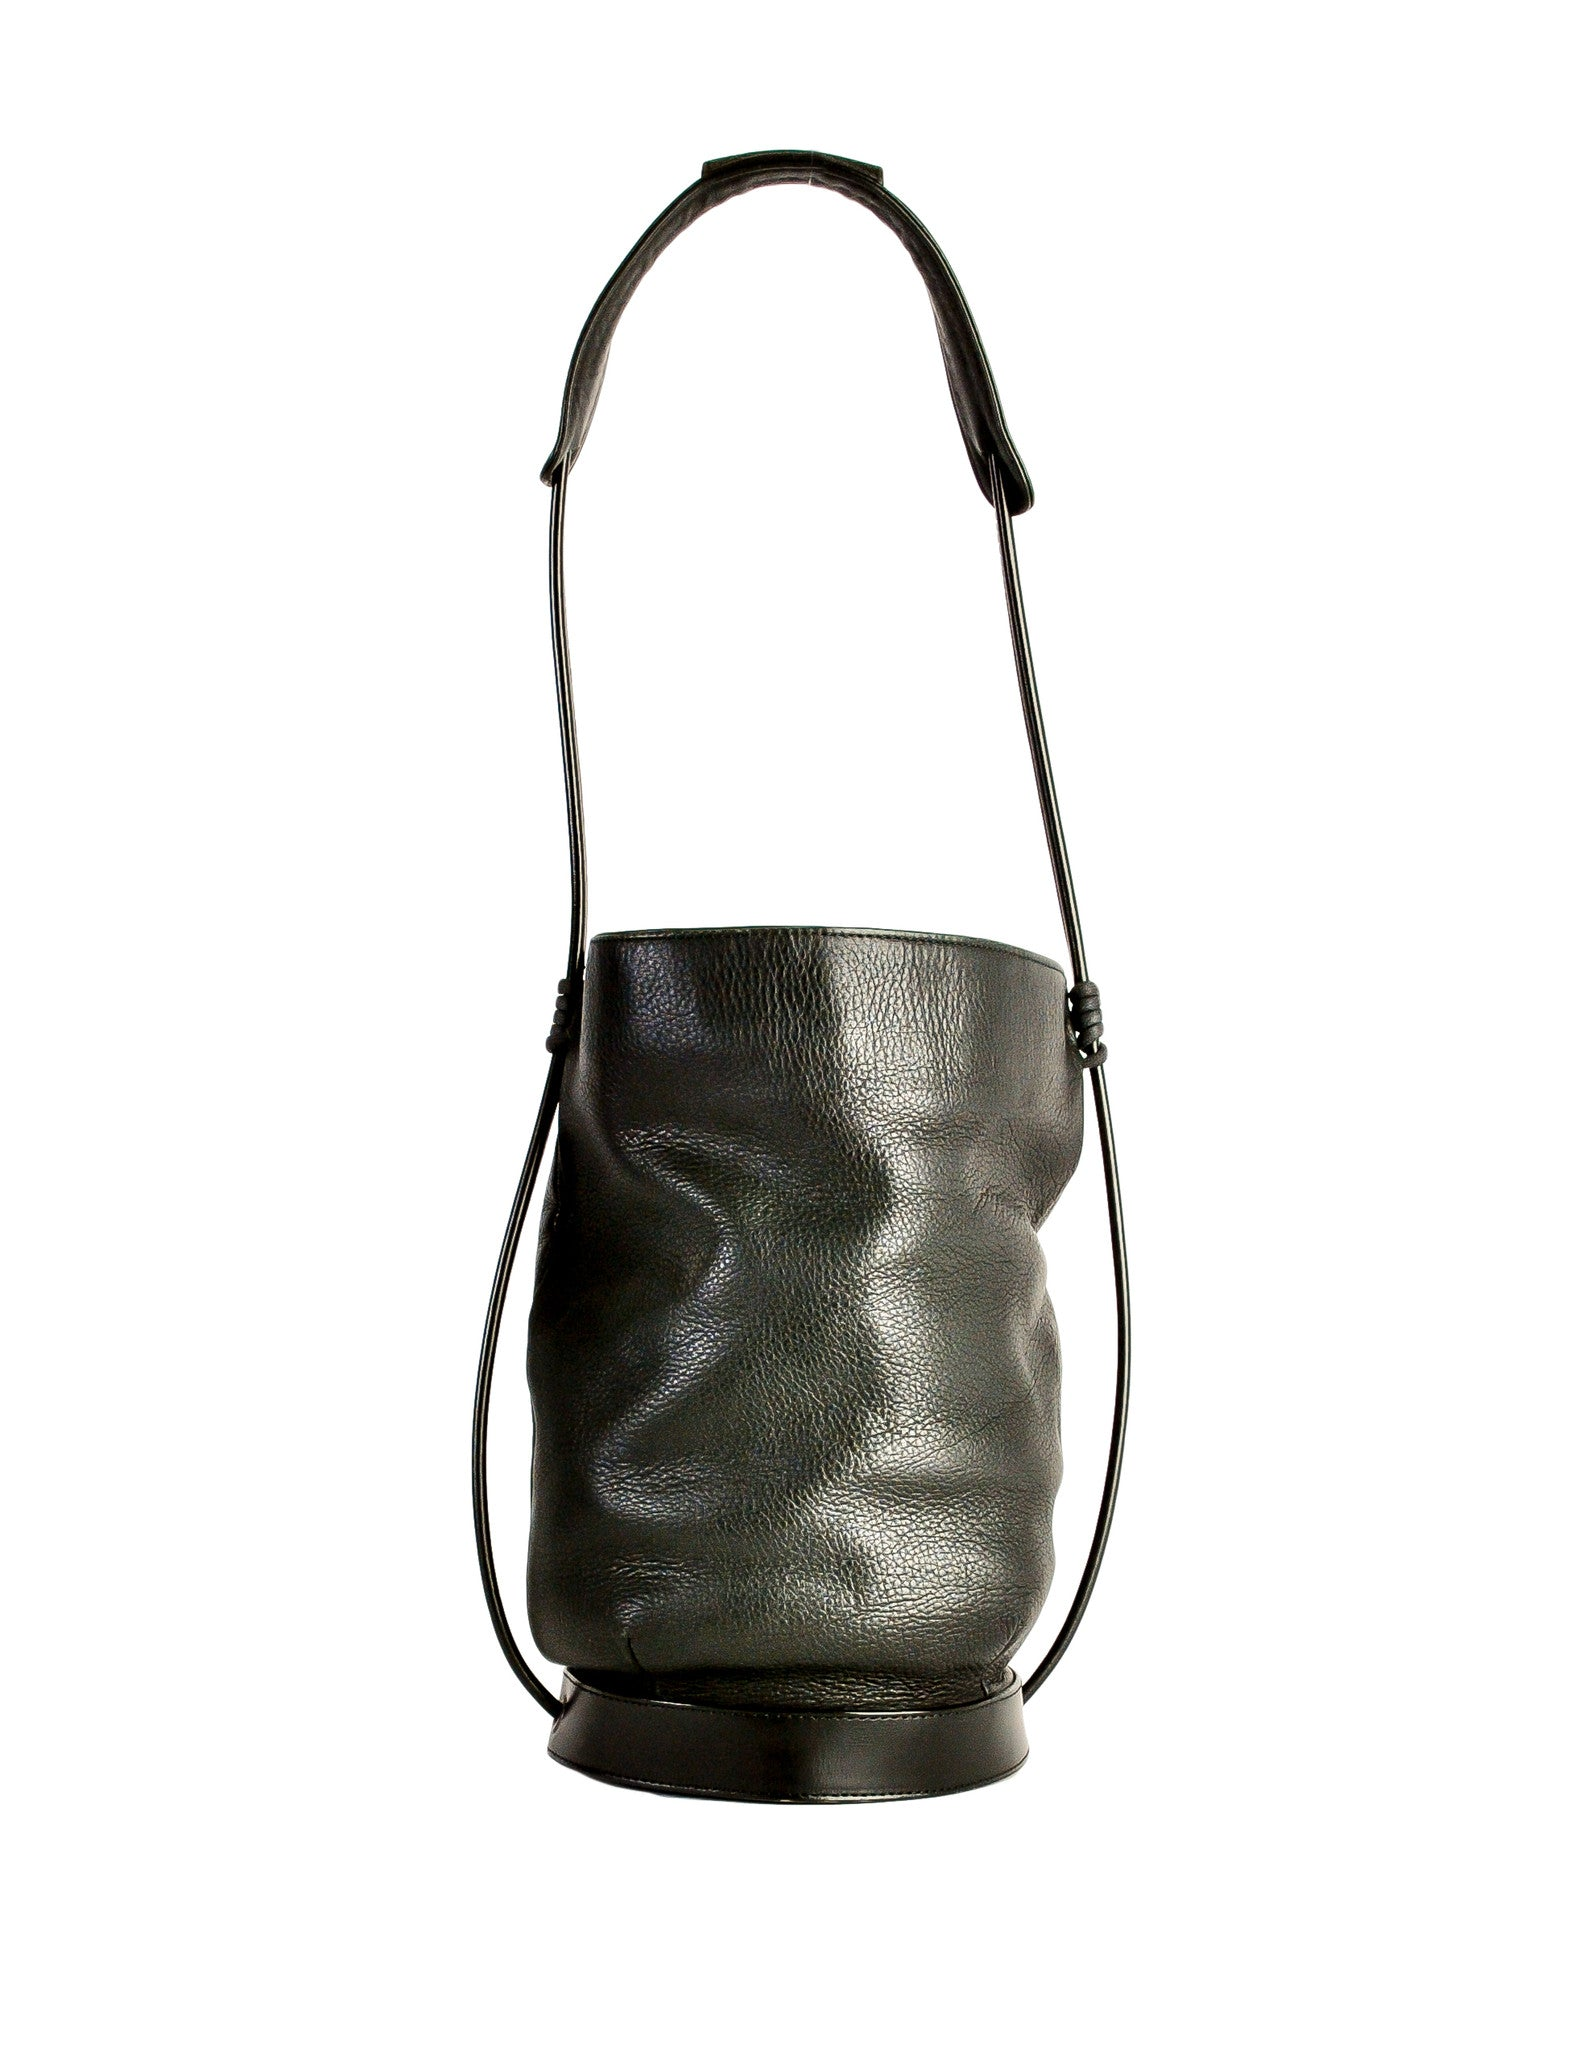 53e7e99872d Issey Miyake Vintage Black Leather Bucket Bag